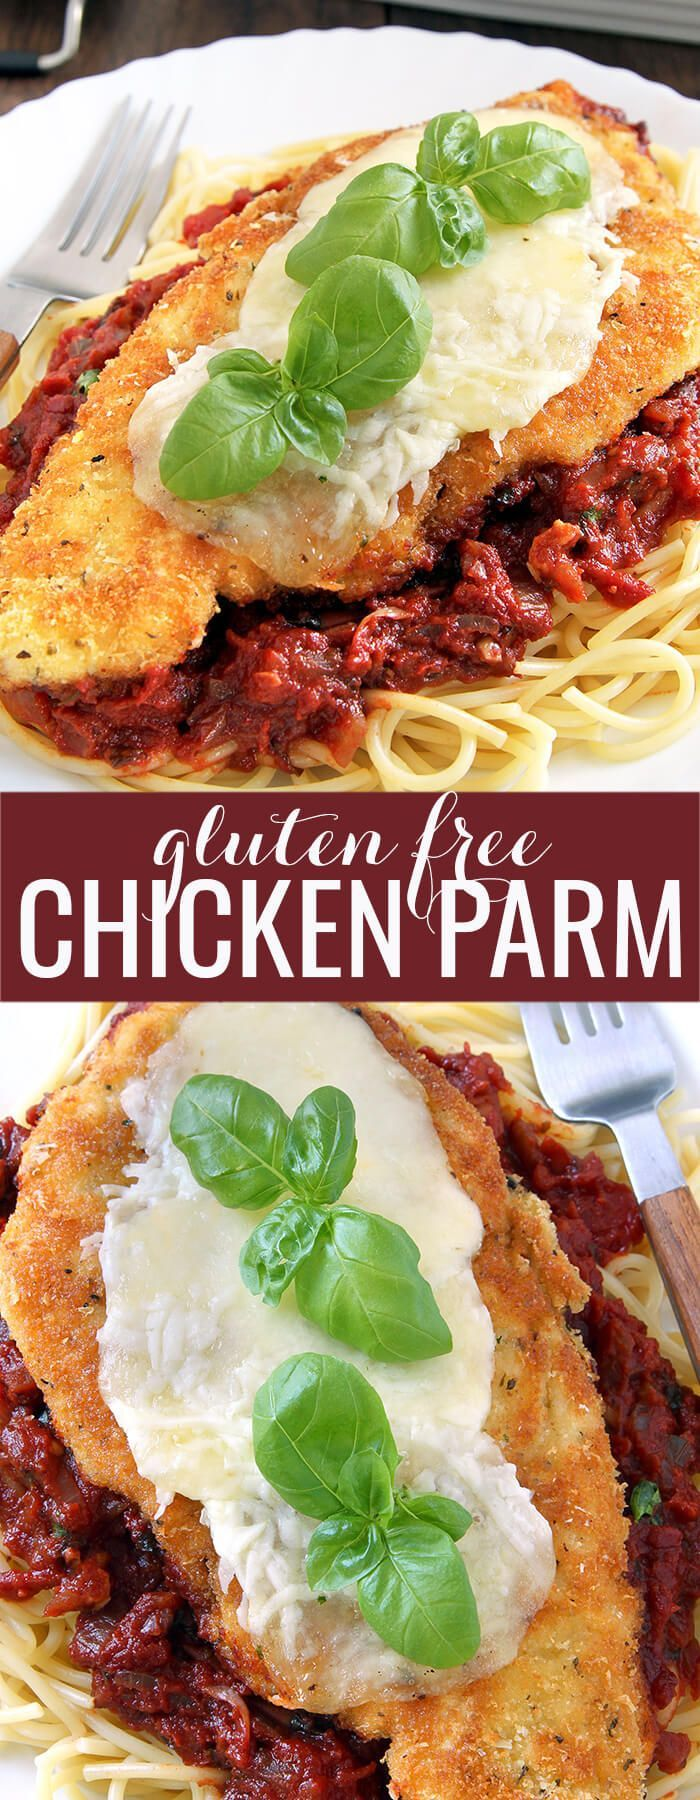 Try this easy recipe for gluten free chicken parmesan and enjoy tender, juicy chicken breasts with the beautifully crisp crust that you remember. Mangia!